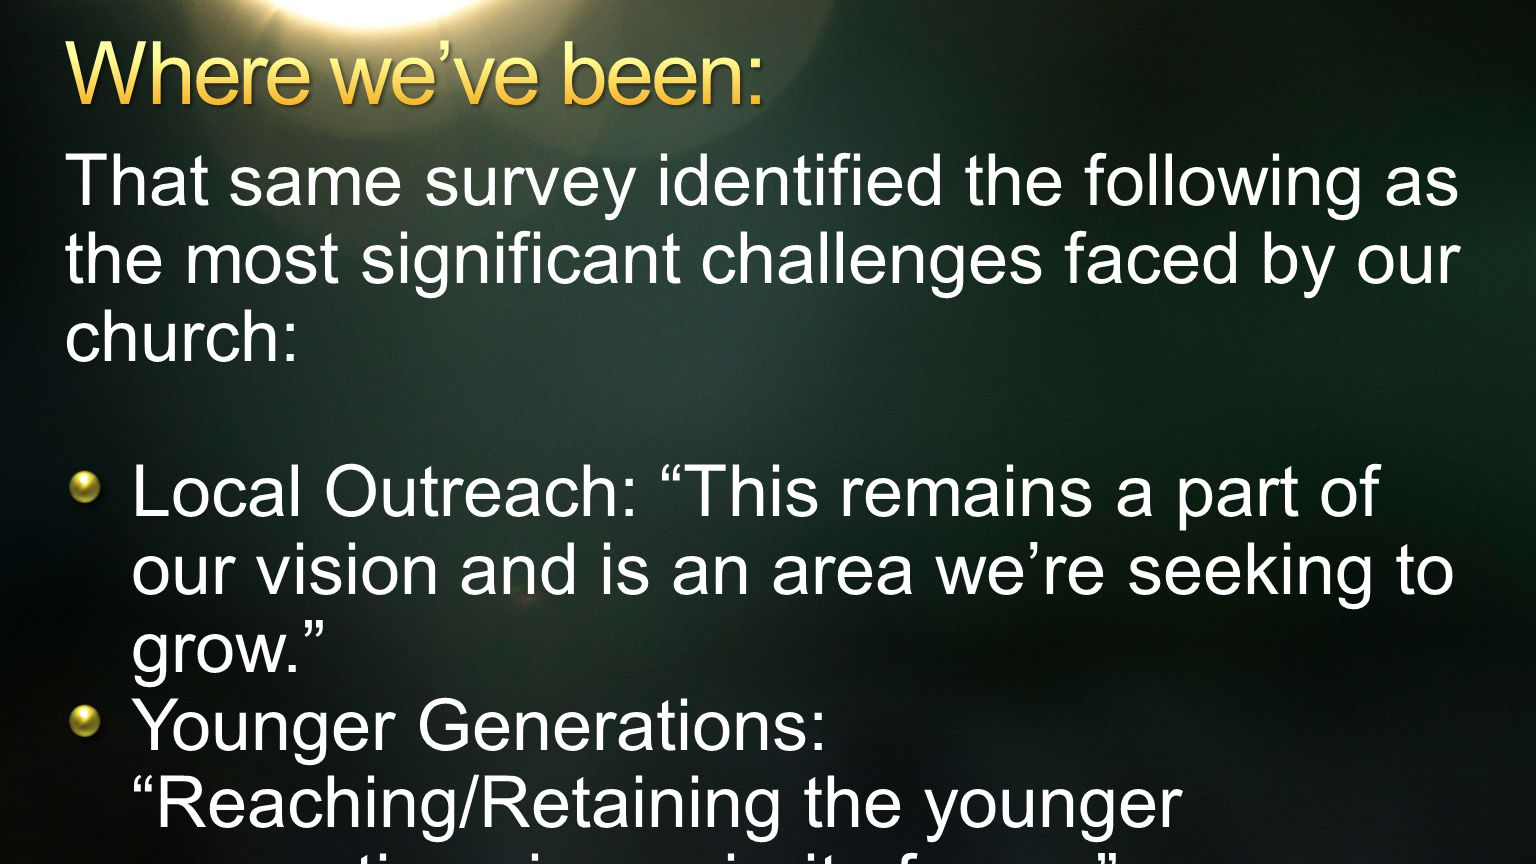 That same survey identified the following as the most significant challenges faced by our church: Local Outreach: This remains a part of our vision and is an area we're seeking to grow. Younger Generations: Reaching/Retaining the younger generations is a priority for us.